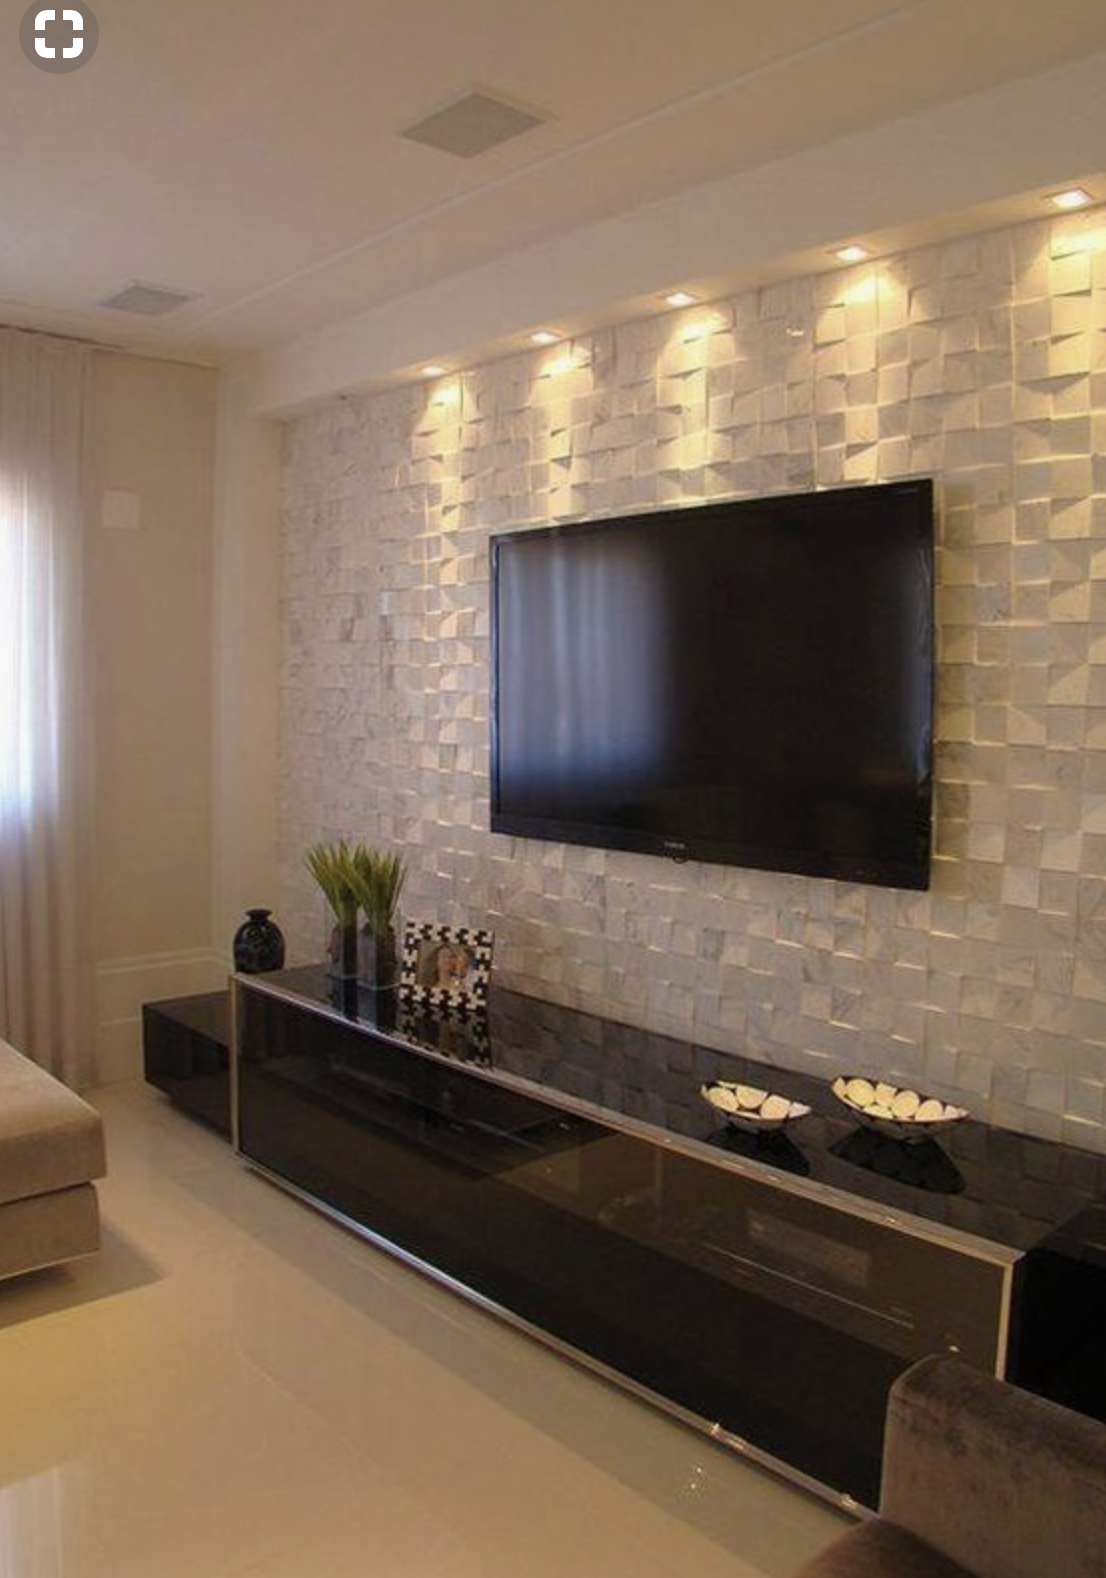 Tv Paneel Wand Tv Wall Panel: Tv Feature Wall Ideas